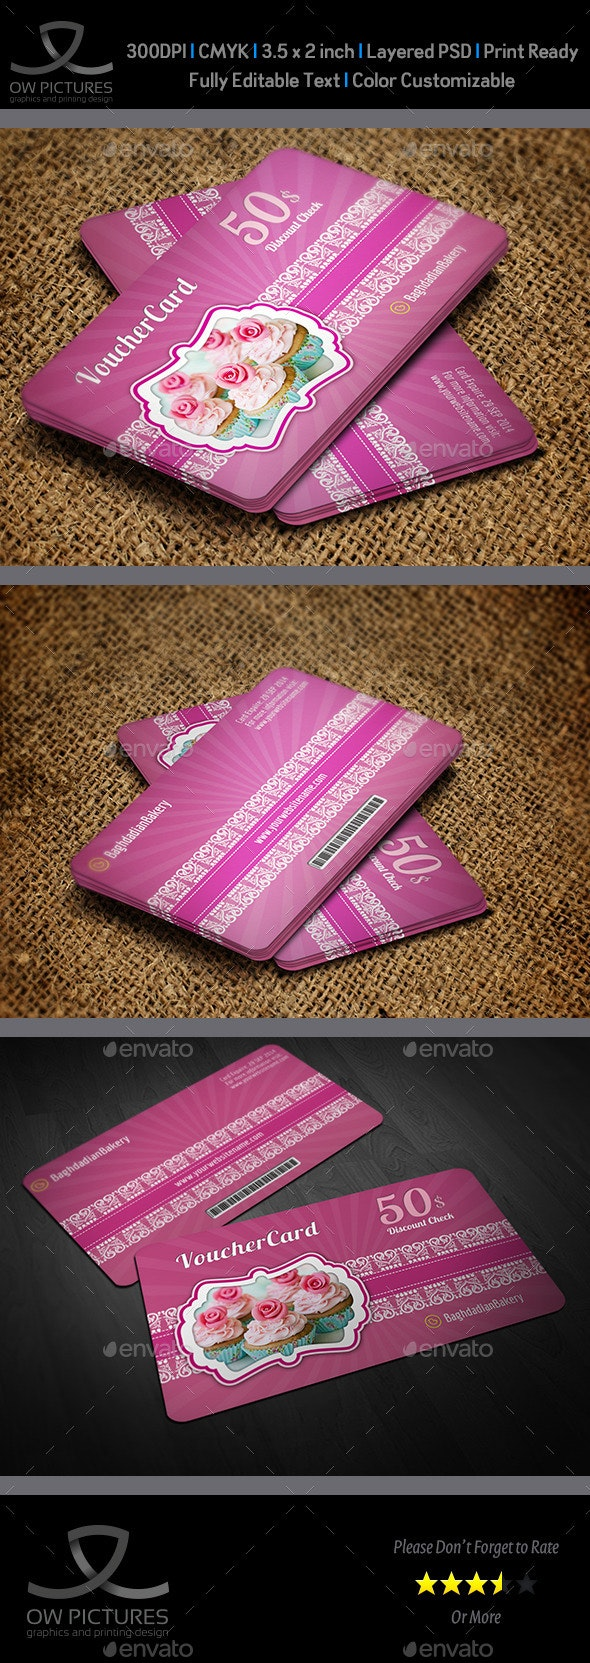 Cake Shop Voucher Gift Card Template Vol.2 - Cards & Invites Print Templates